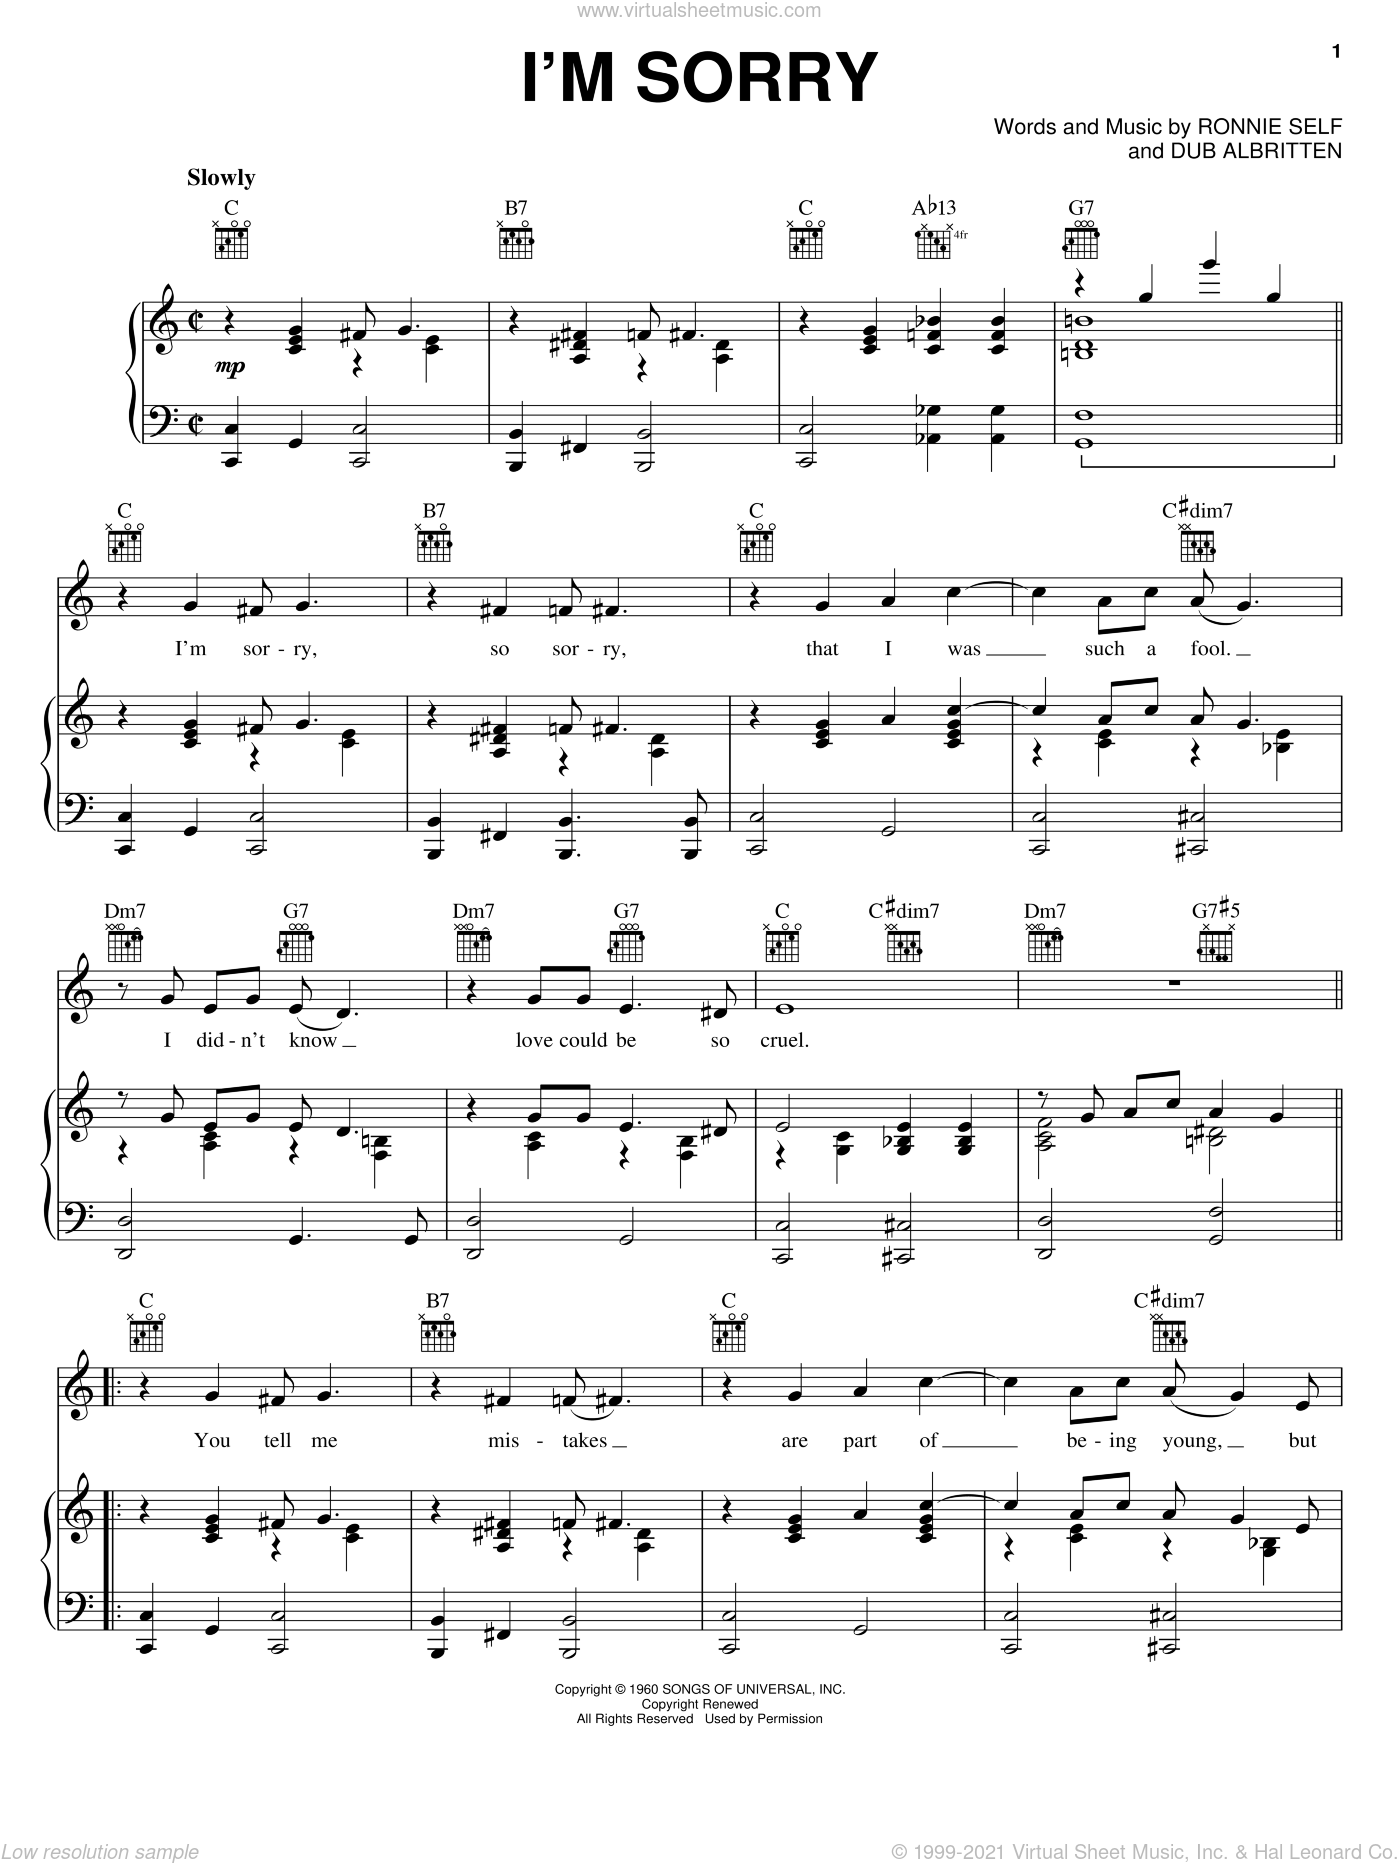 I'm Sorry sheet music for voice, piano or guitar by Ronnie Self